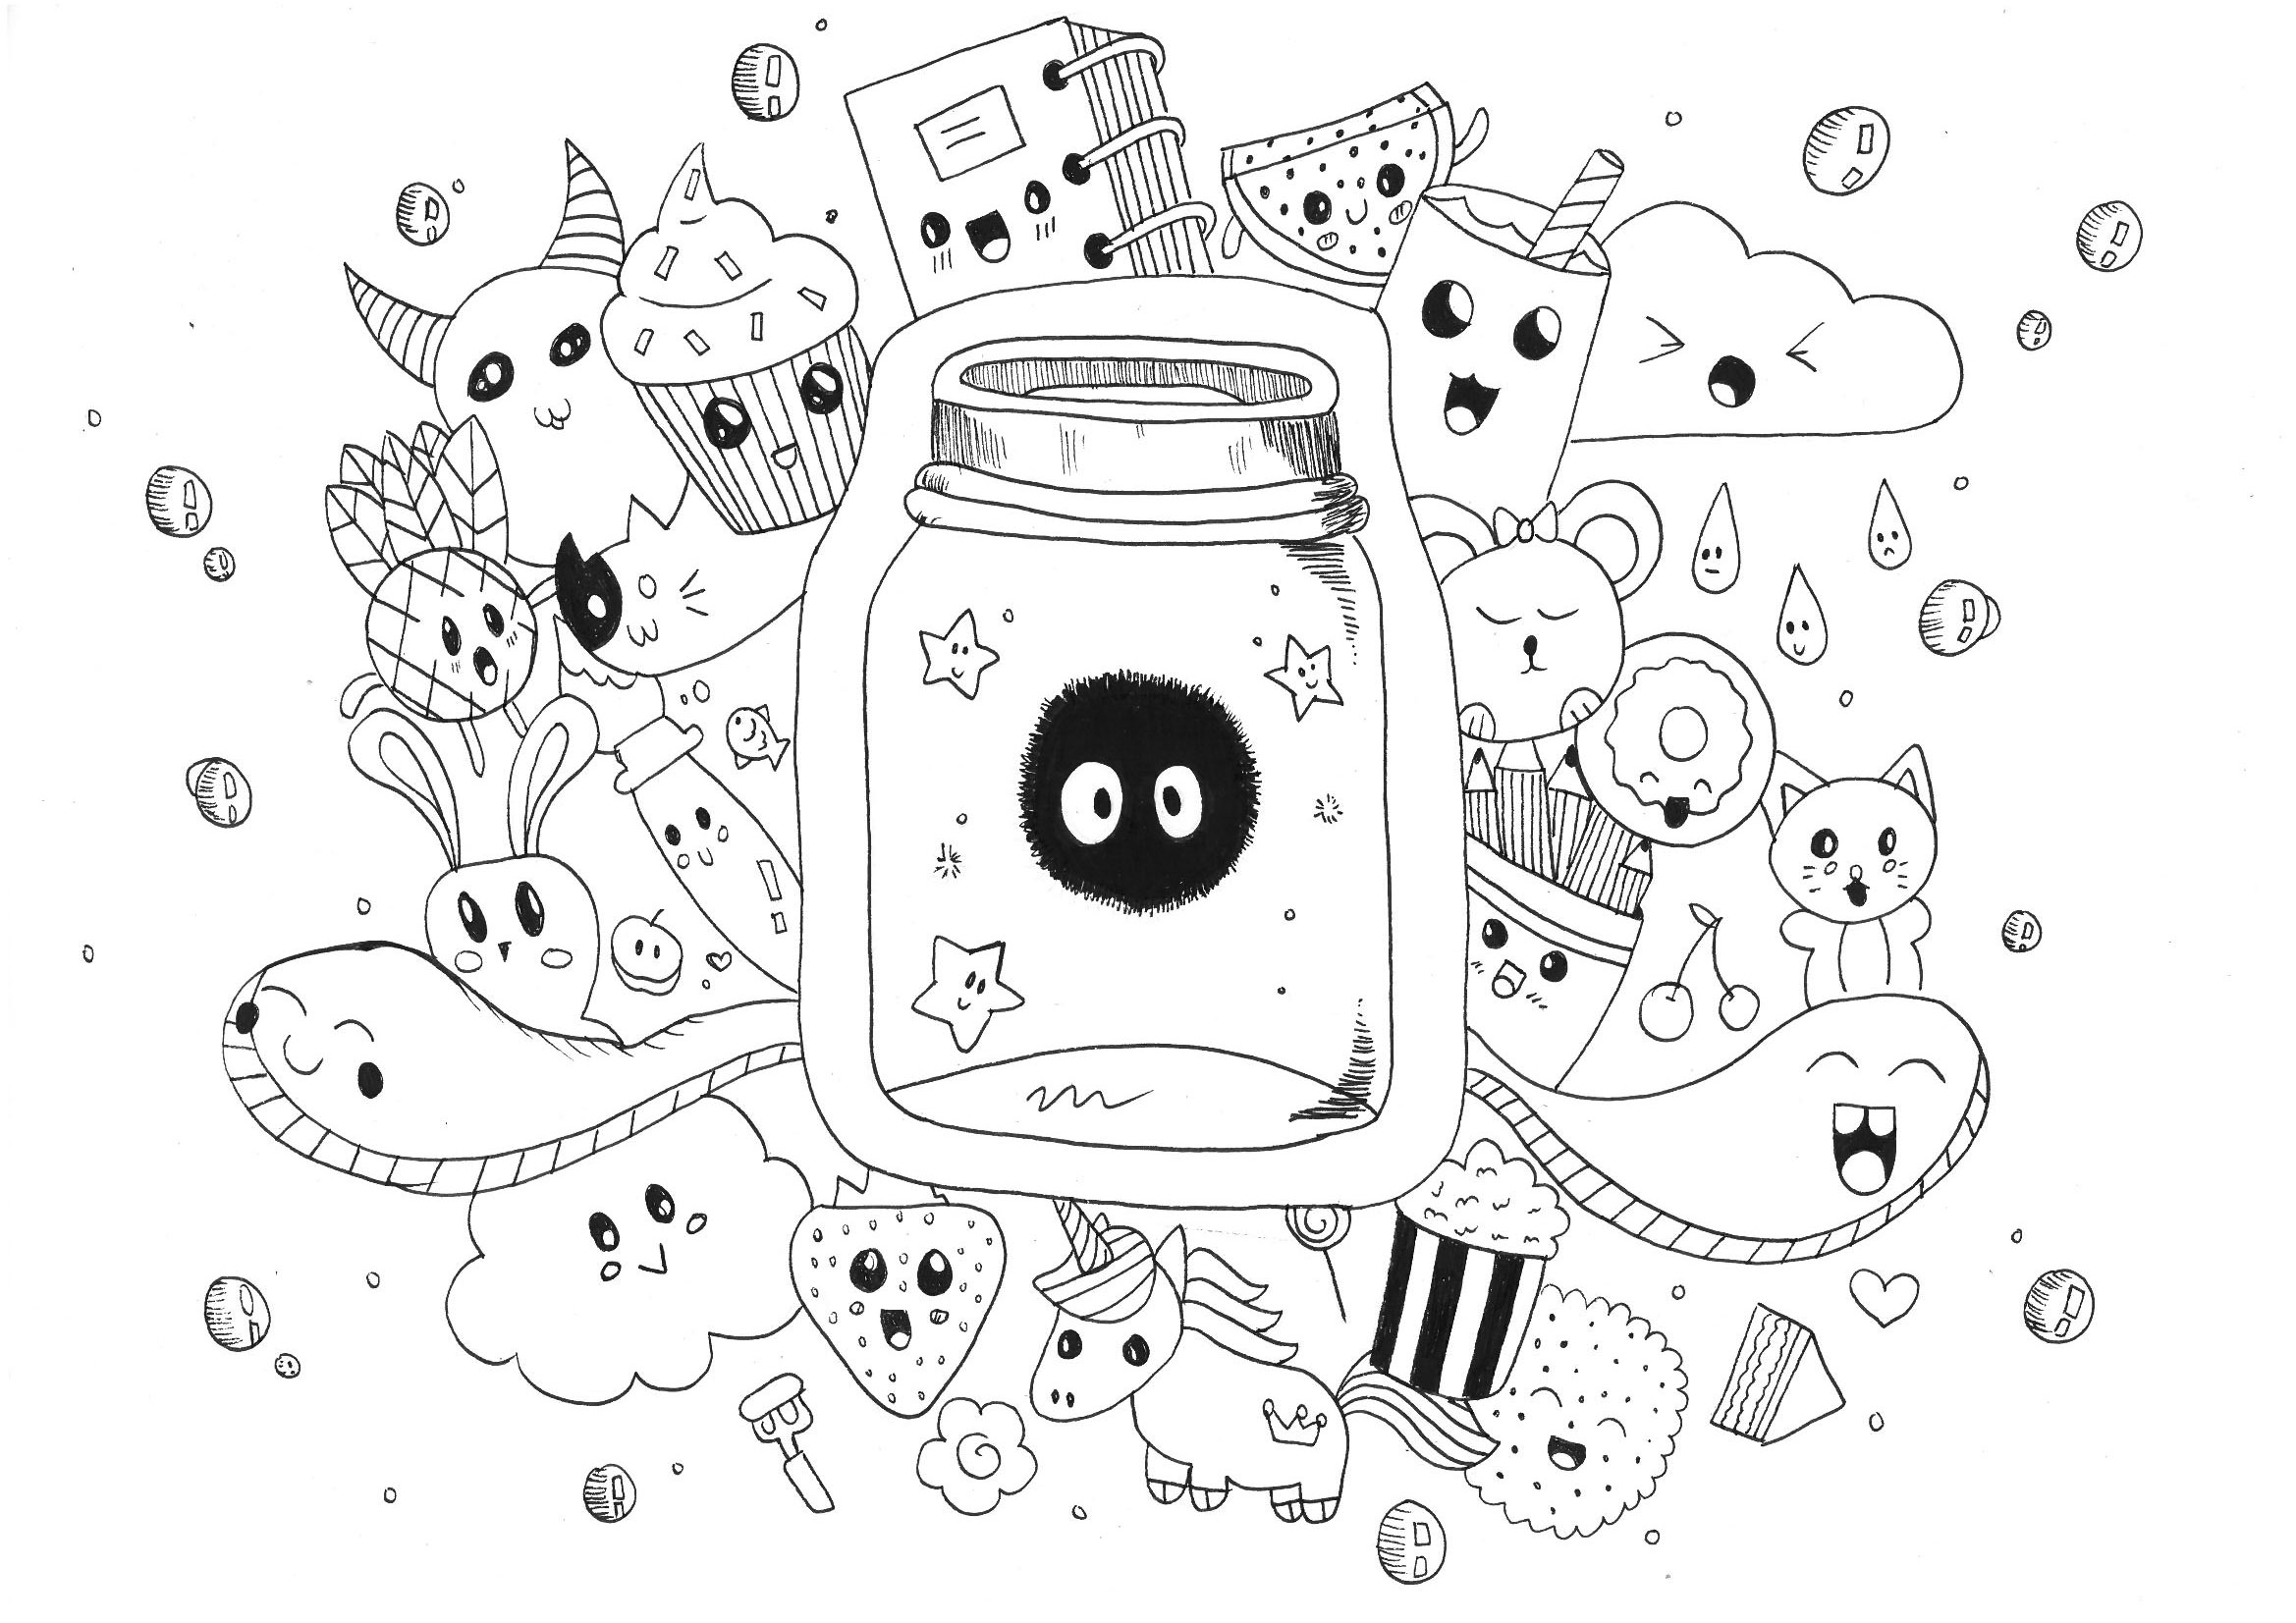 coloring page kawaii doodle rachel cute kawaii monsters unicorns and funny animals a perfect doodle drawing for a perfect